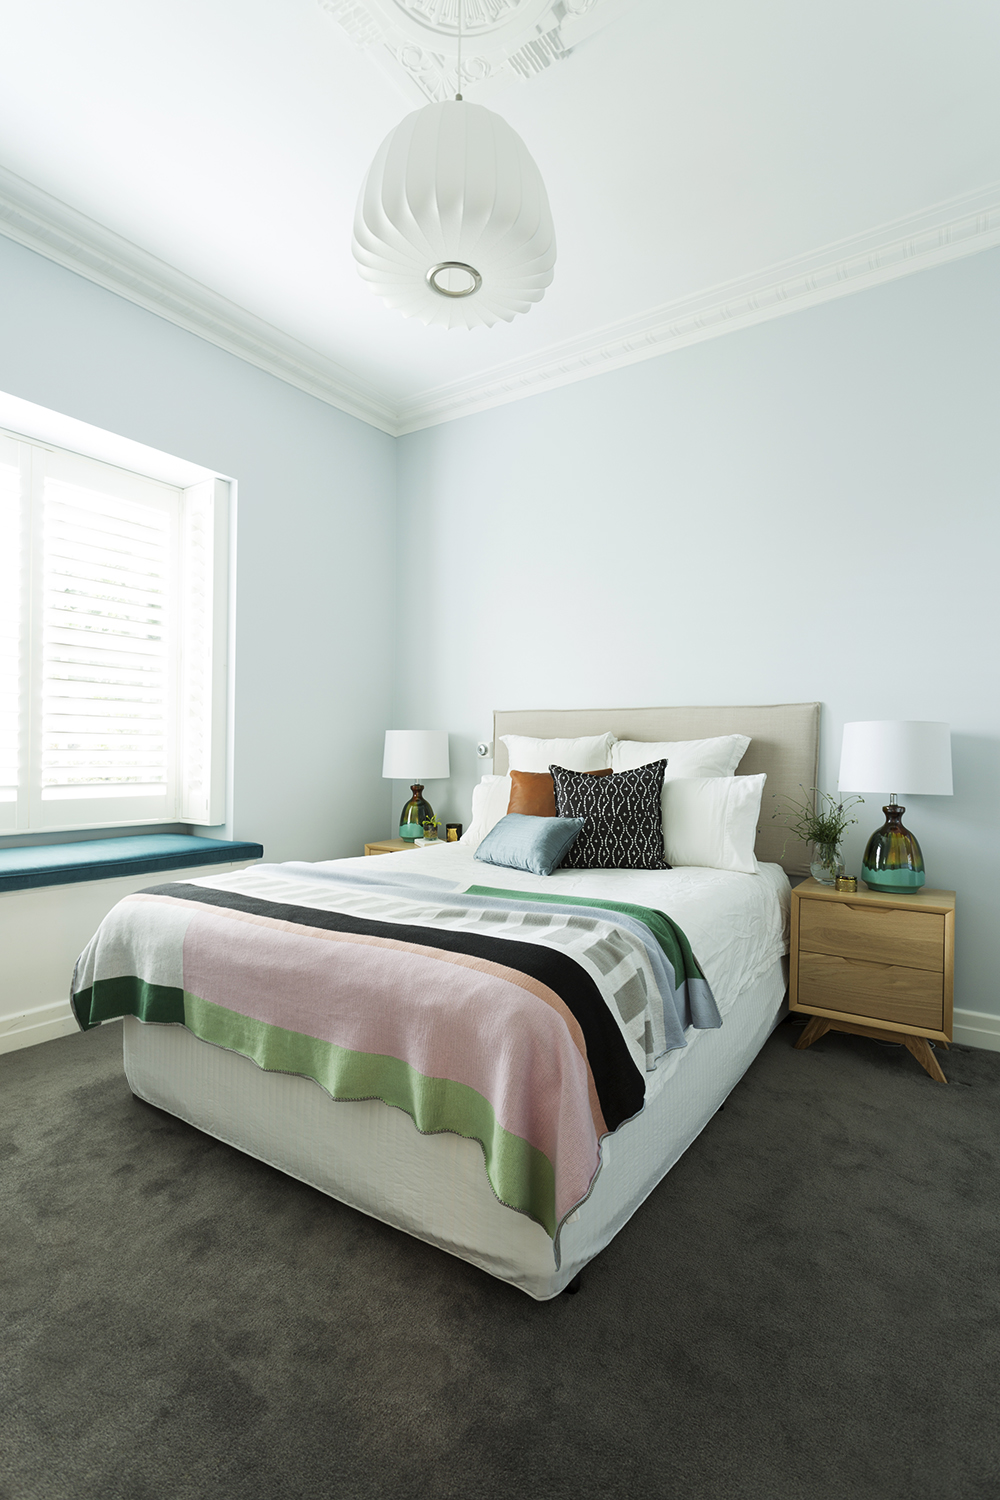 bedroom design ideas, interior designer melbourne